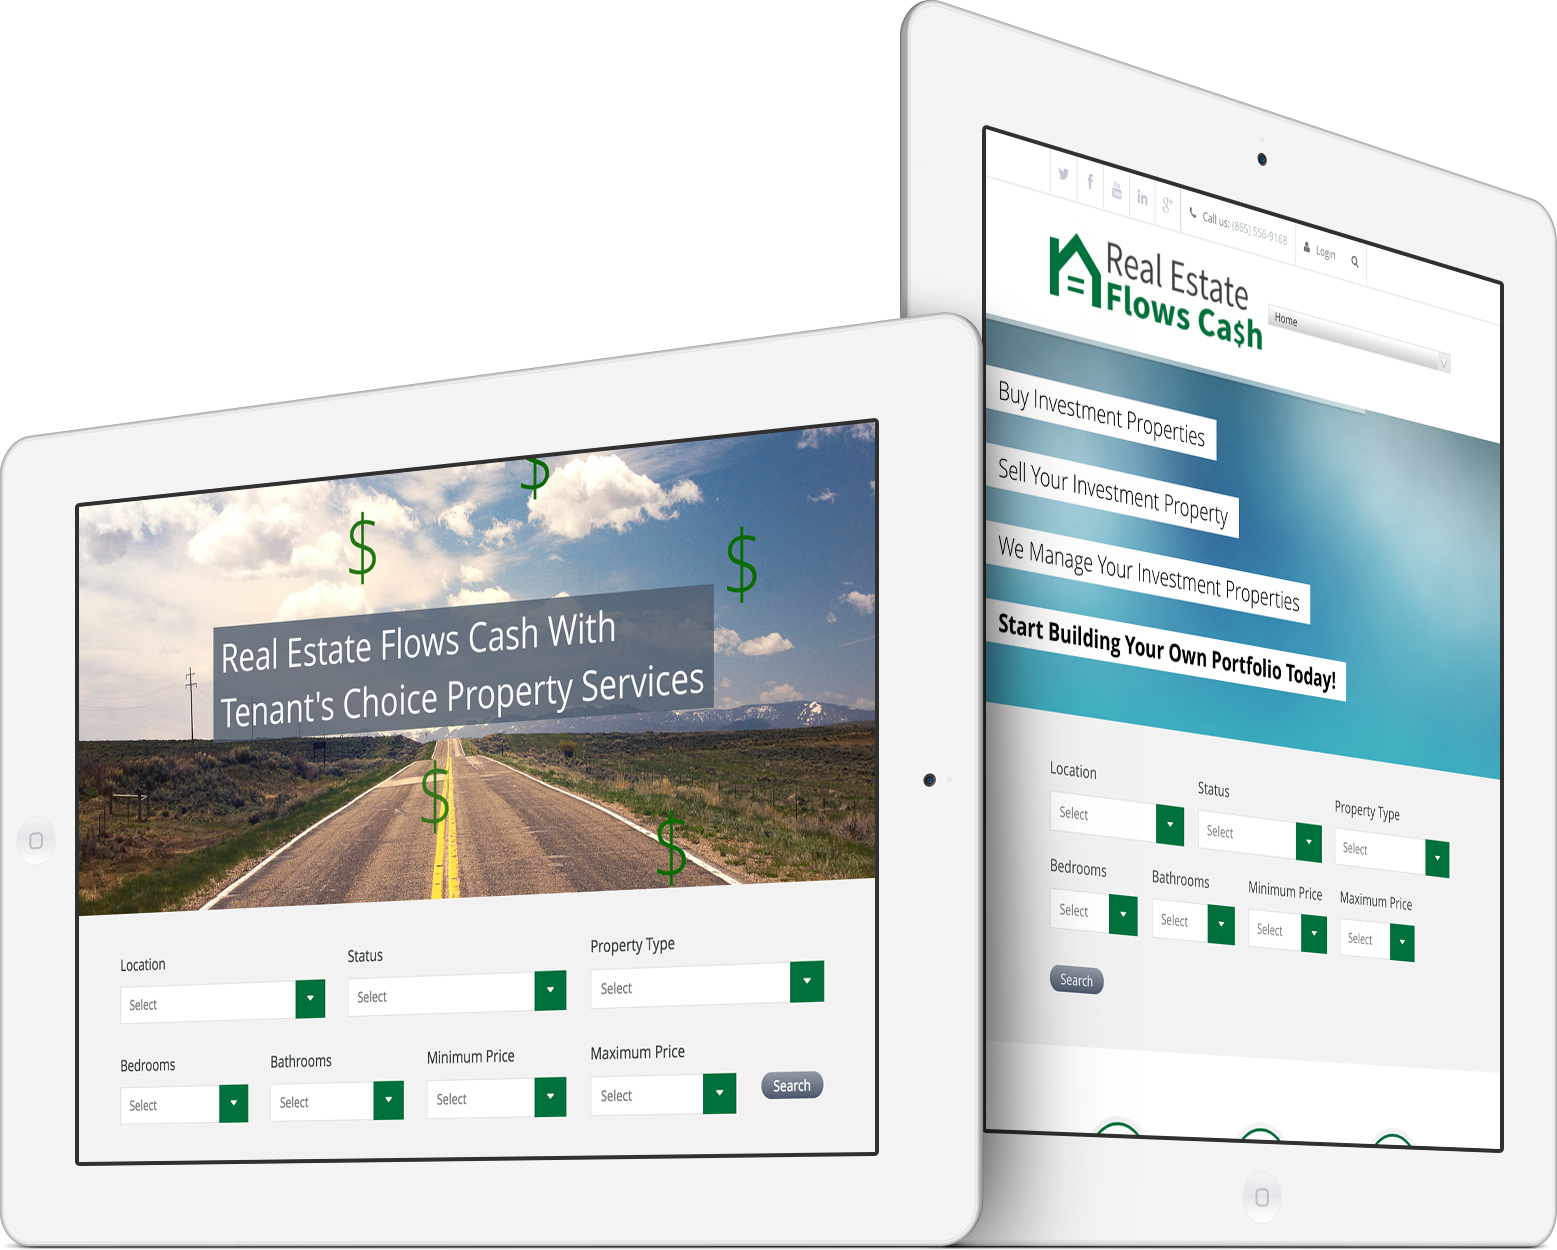 Real Estate Flows Cash Responsive Web Design on an iPad